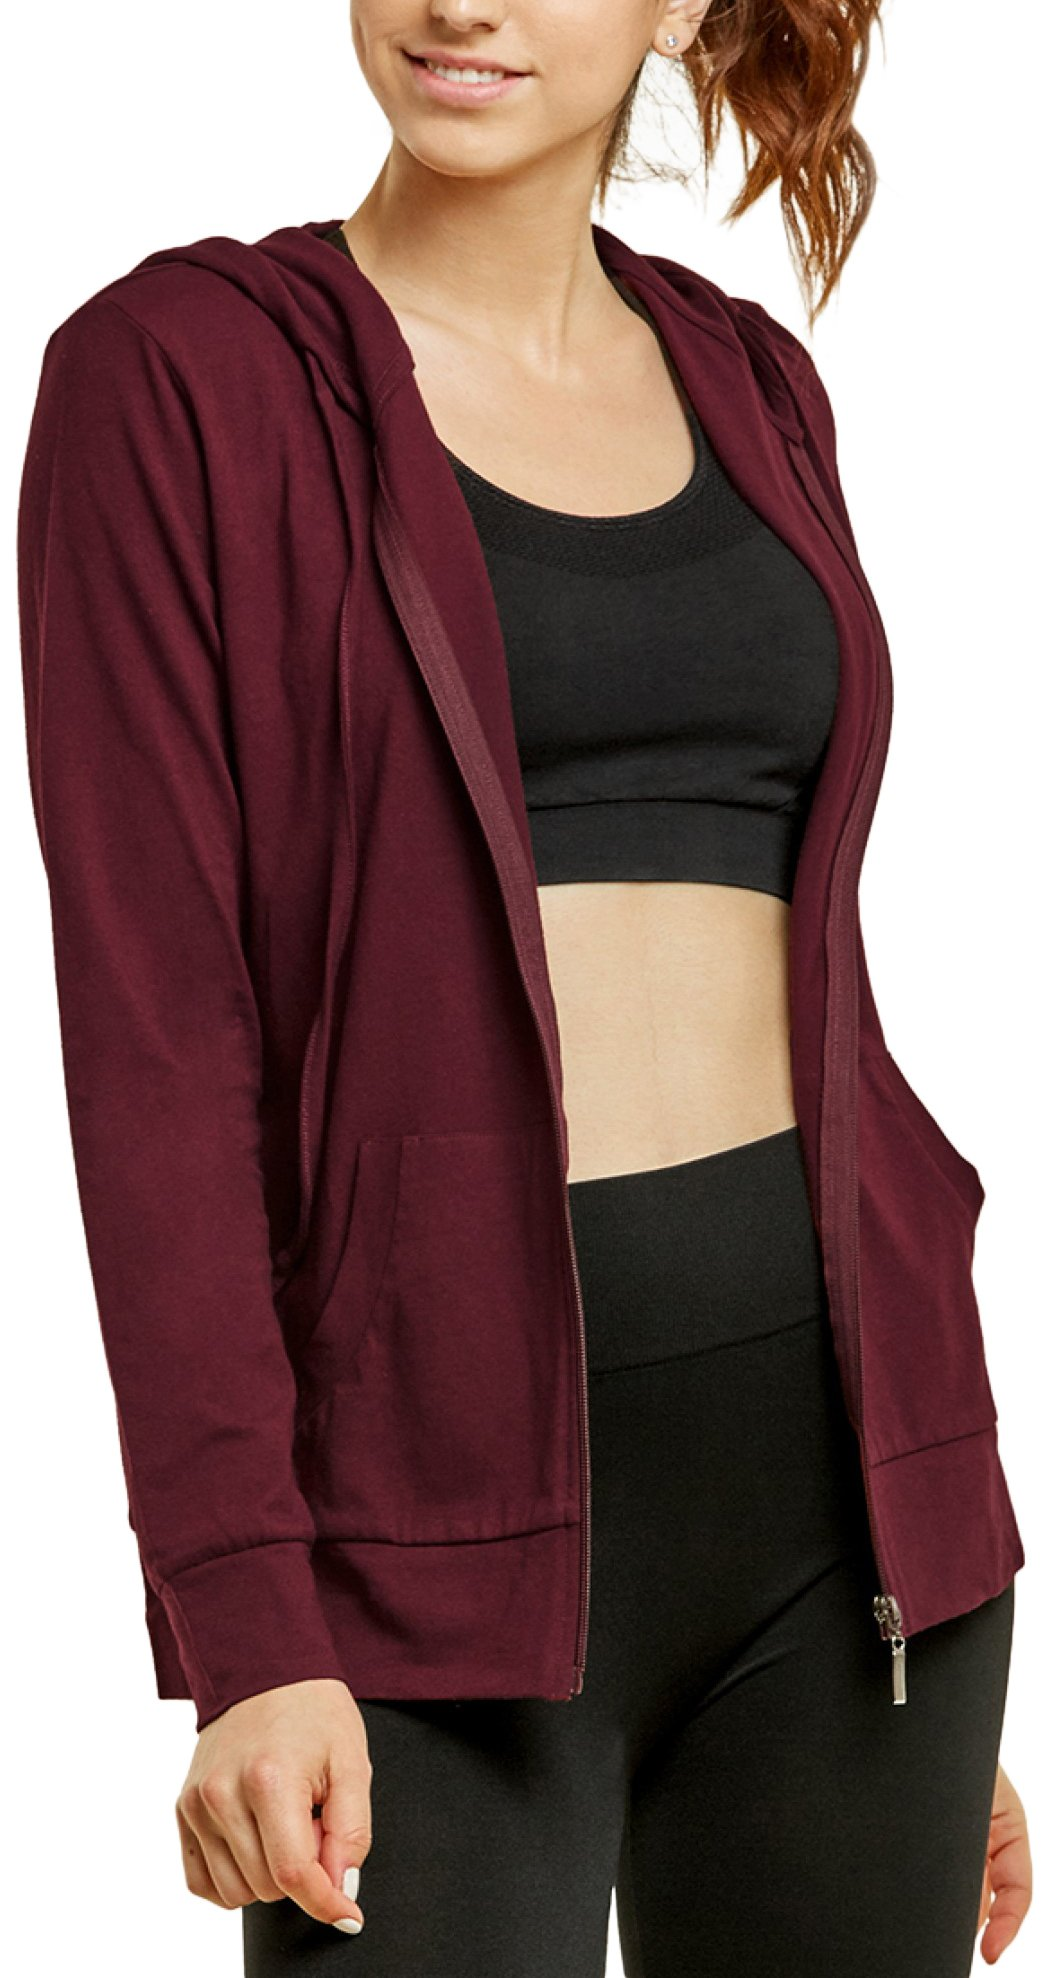 ToBeInStyle Women's Thin Fabric L.S. Zip up Hoodie - Burgundy - Large